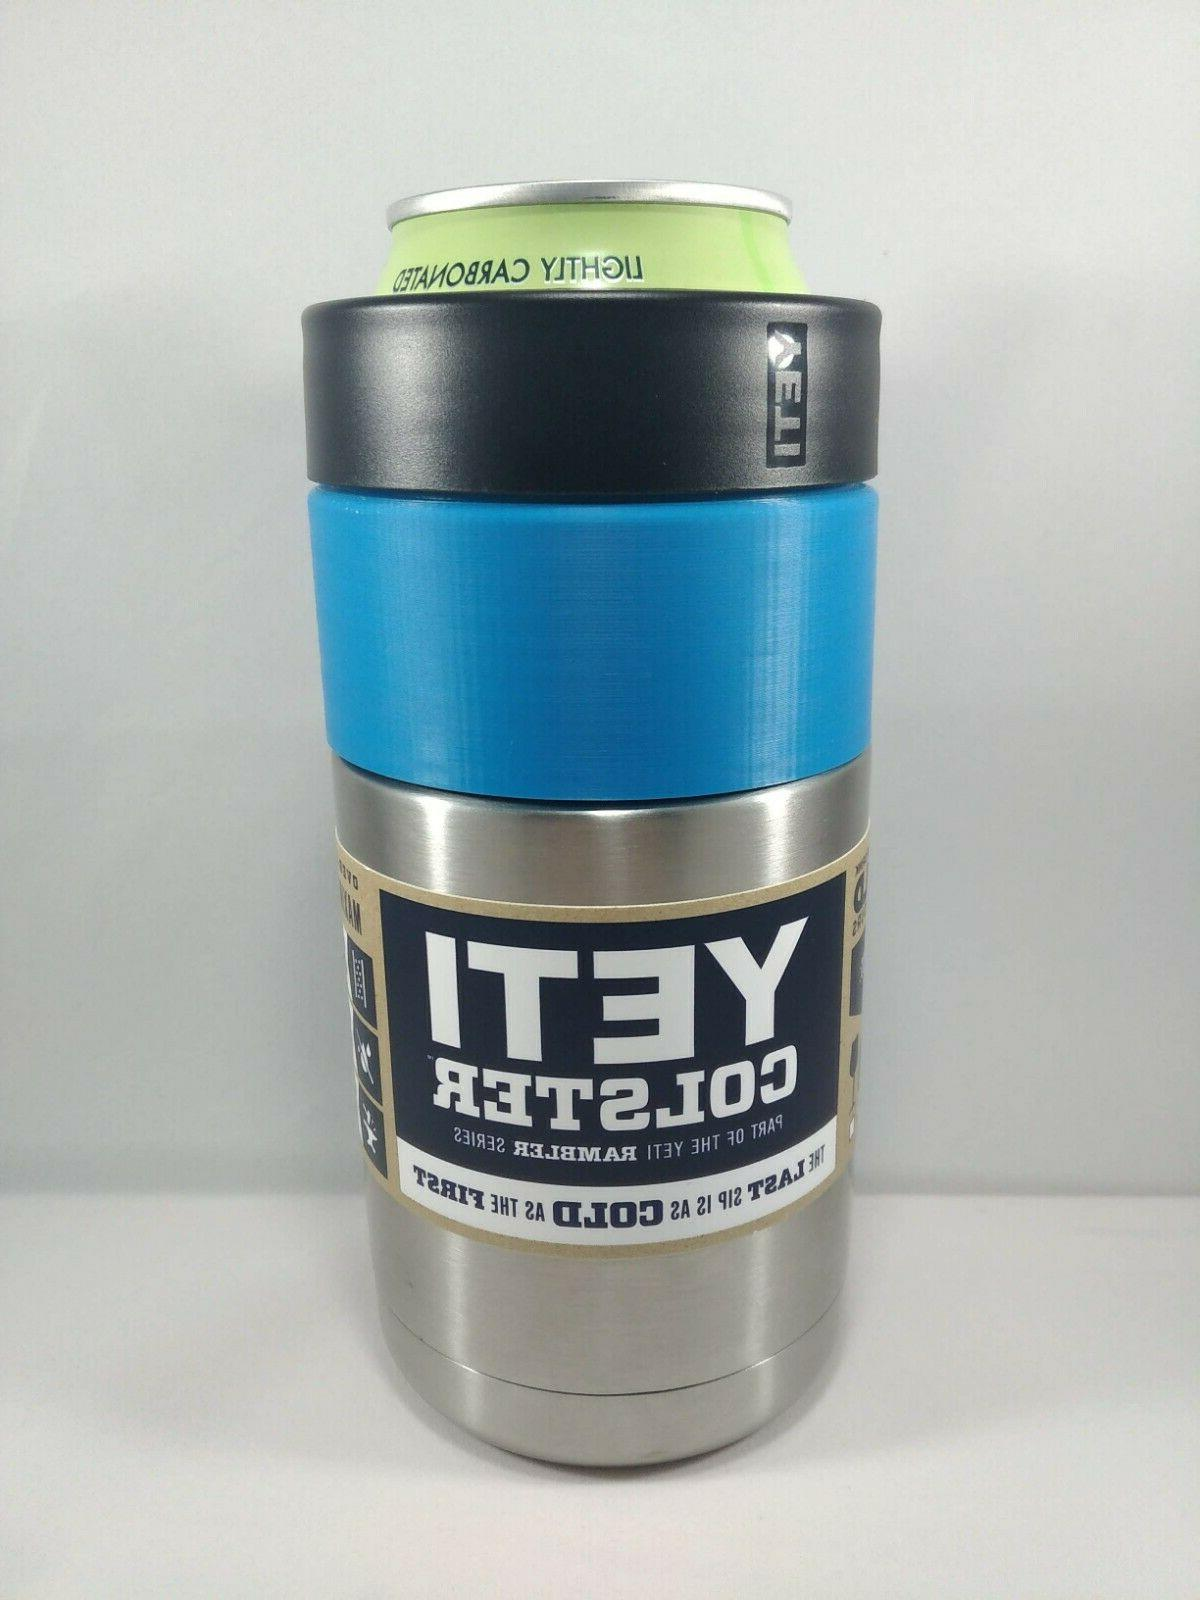 Yeti Colster 12 Adapter Cozy Fits RTIC OZARK